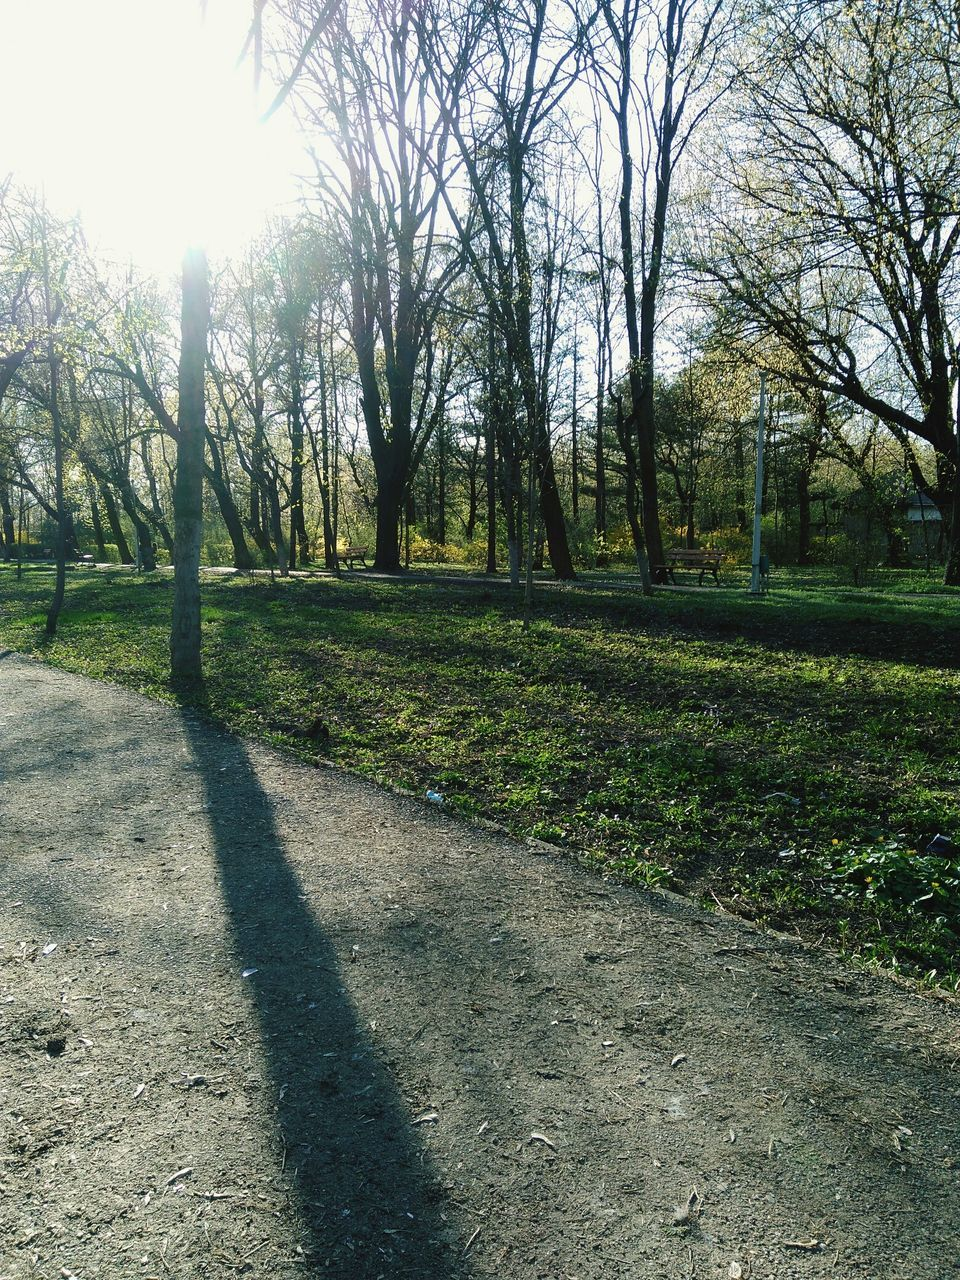 sunlight, shadow, tree, nature, day, tranquility, grass, outdoors, tranquil scene, bare tree, no people, beauty in nature, growth, scenics, branch, sky